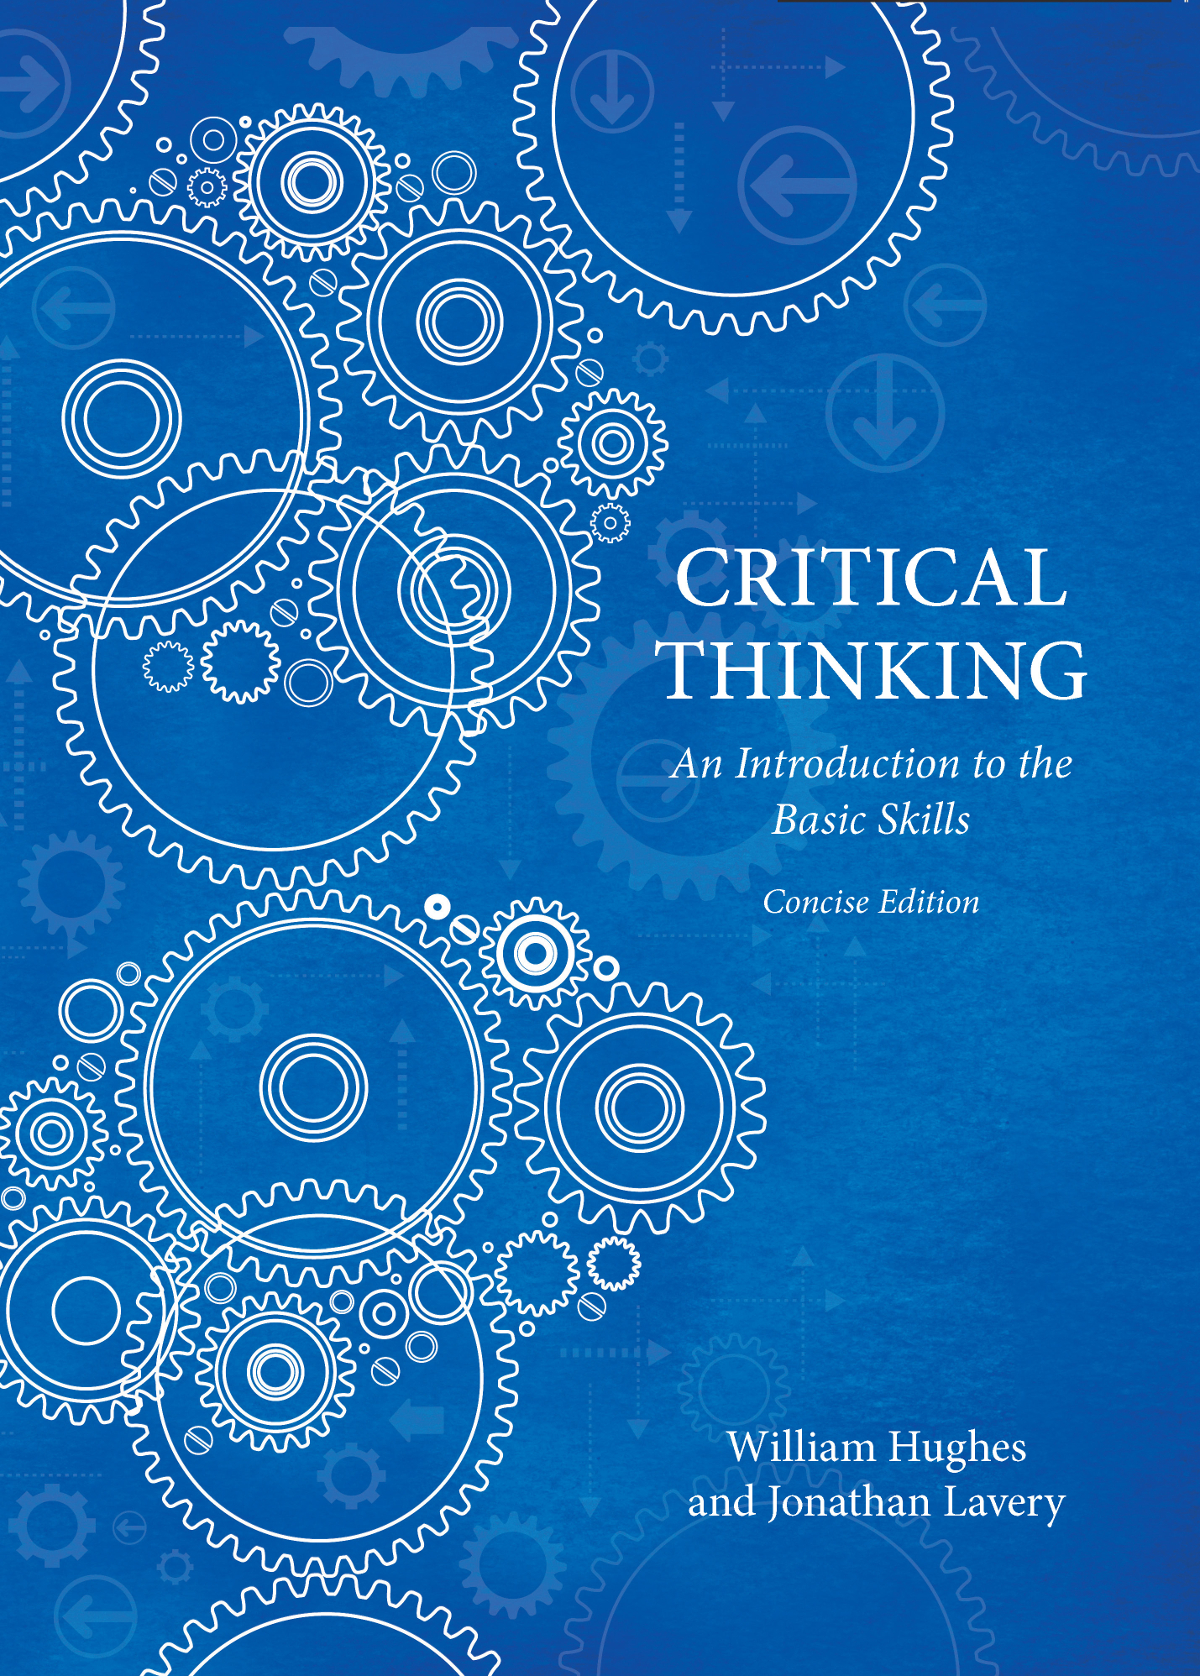 critical thinking an introduction to the basic skills Critical thinking: an introduction to the basic skills critical thinking: an introduction to the basic skills by unknown author by unknown author.